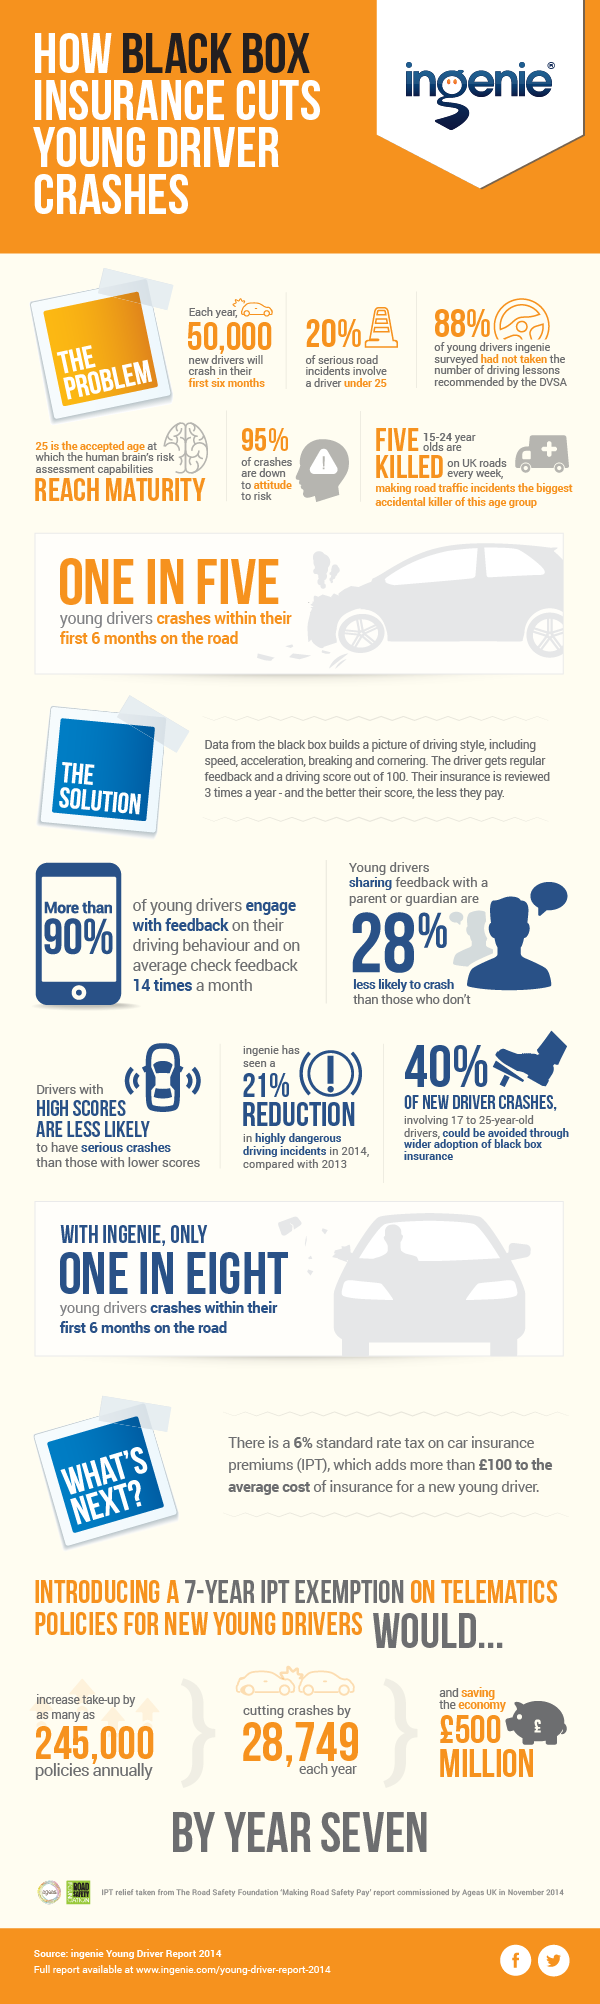 How Blackbox Insurance Cuts Young Driver Crashes #infographic